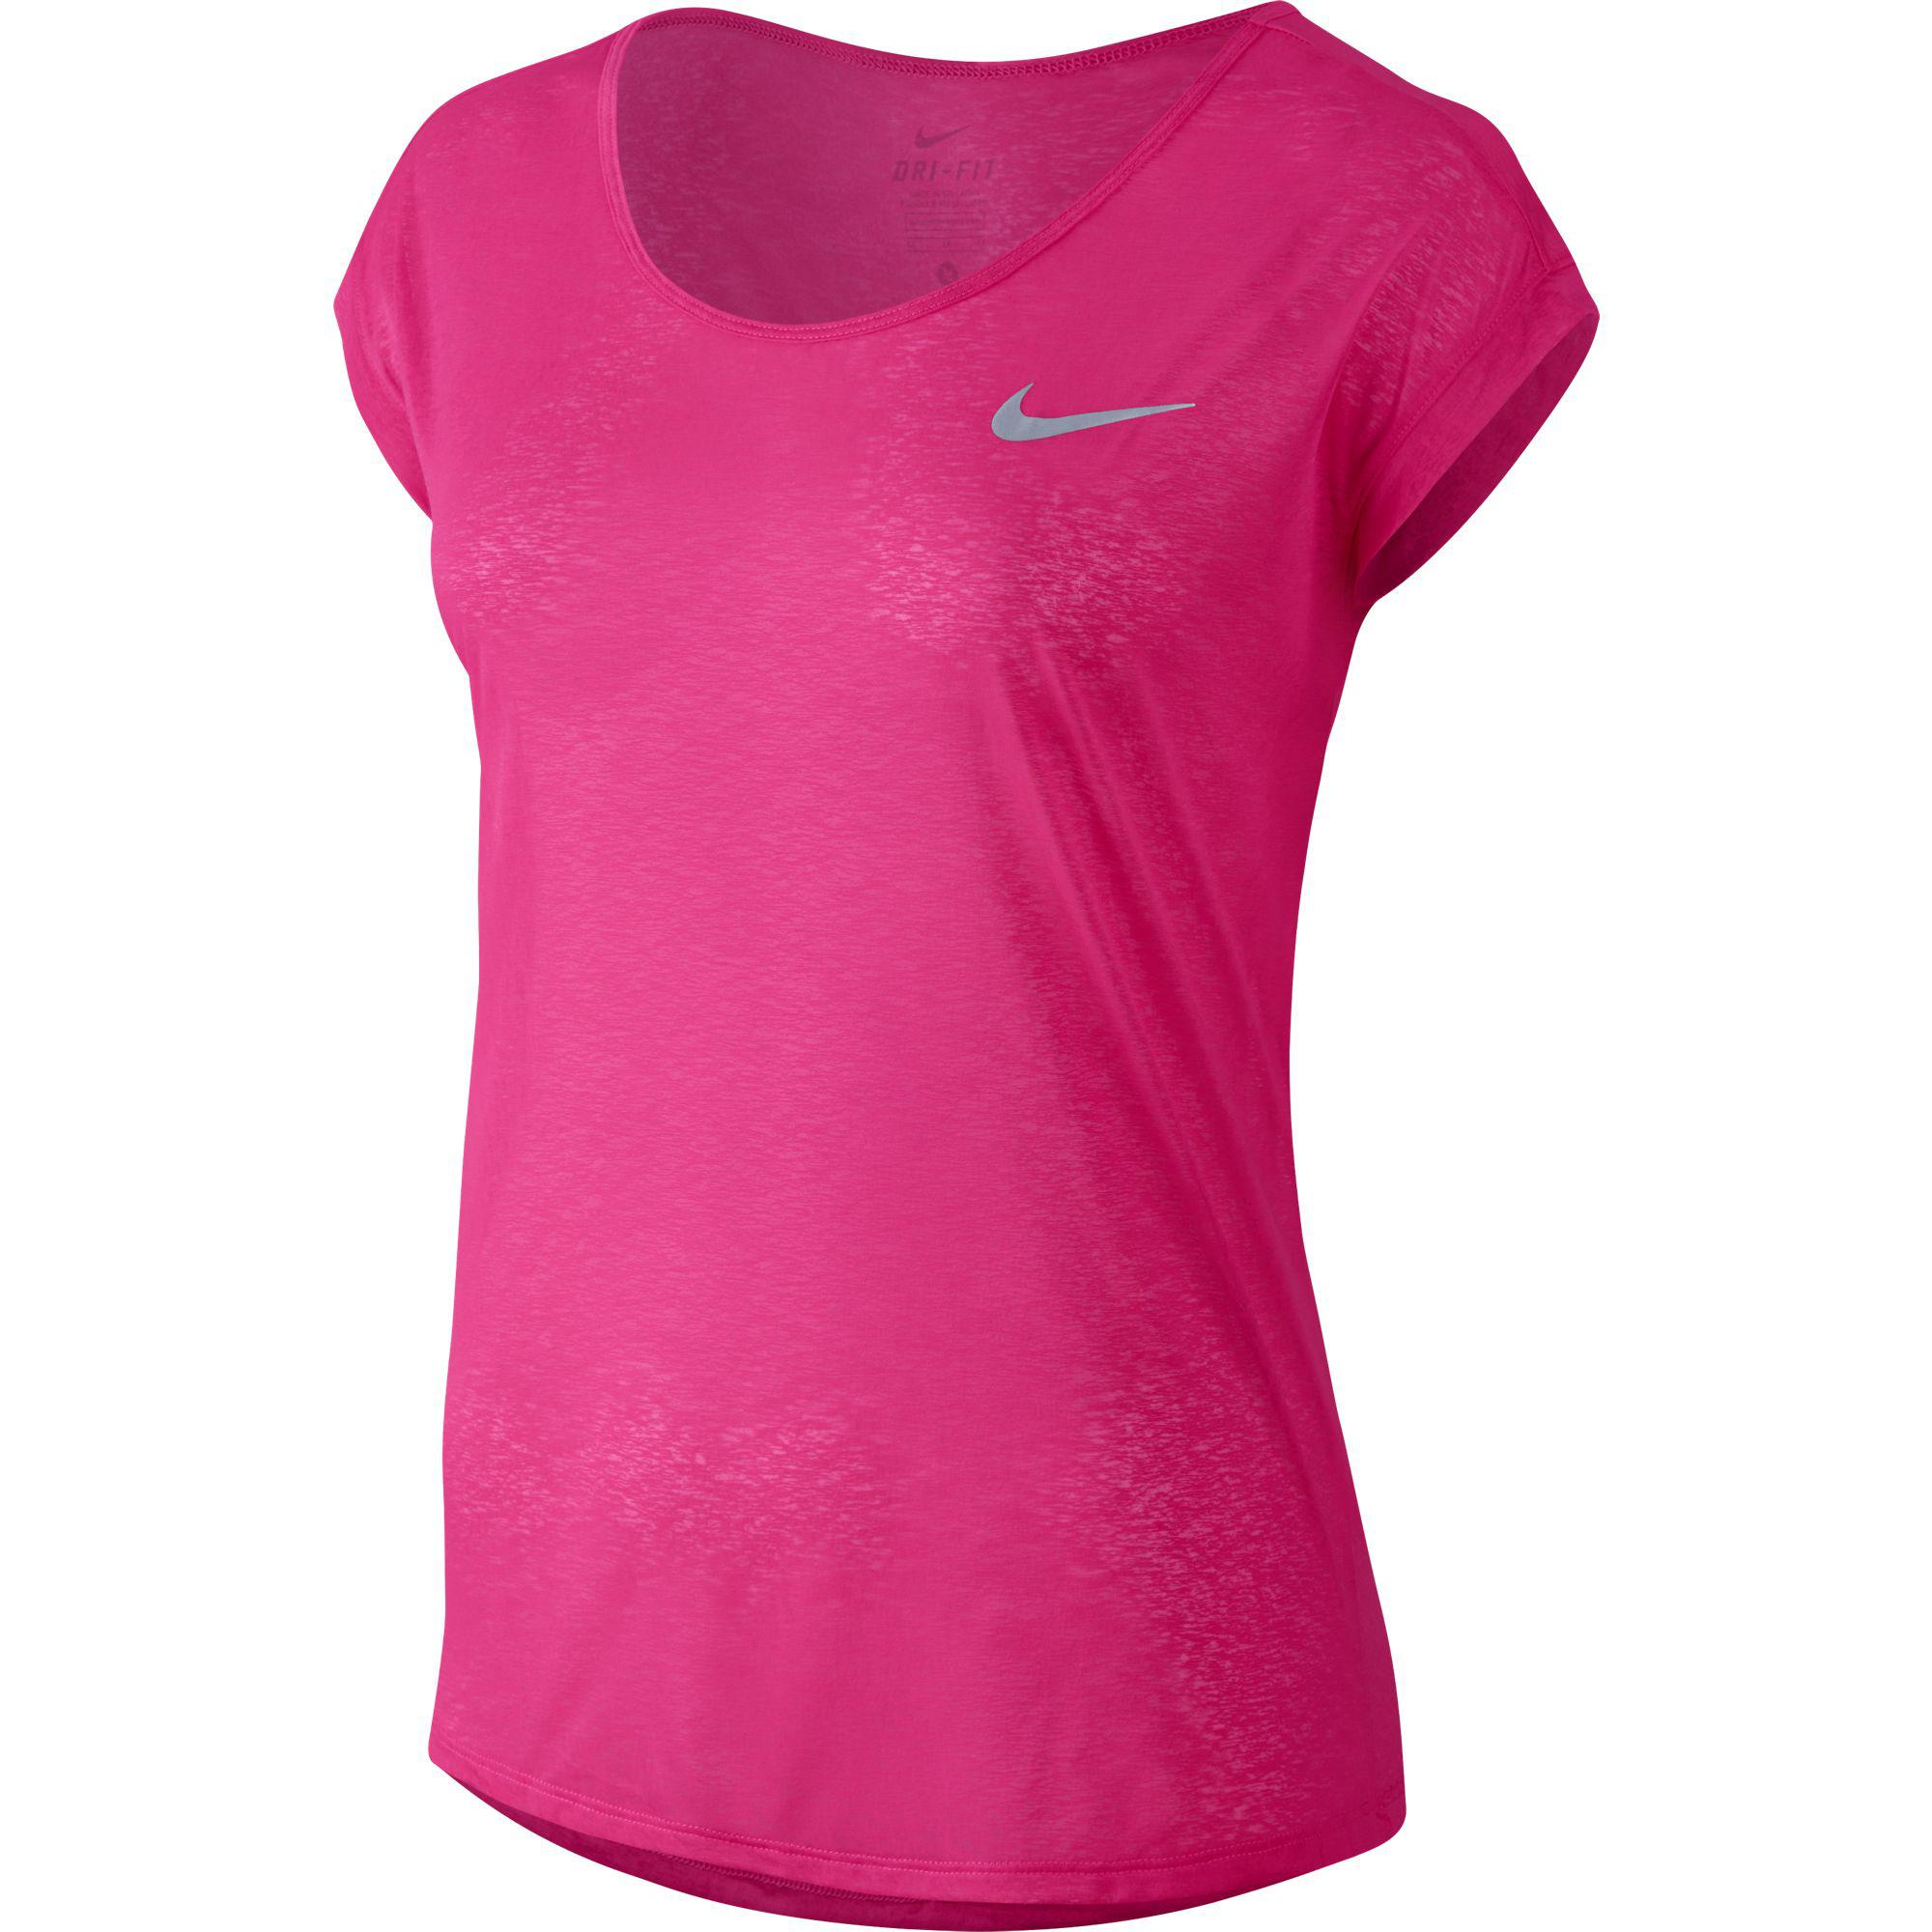 Nike Running Clothes Clearance Tops Womens Shirts Funny Dry